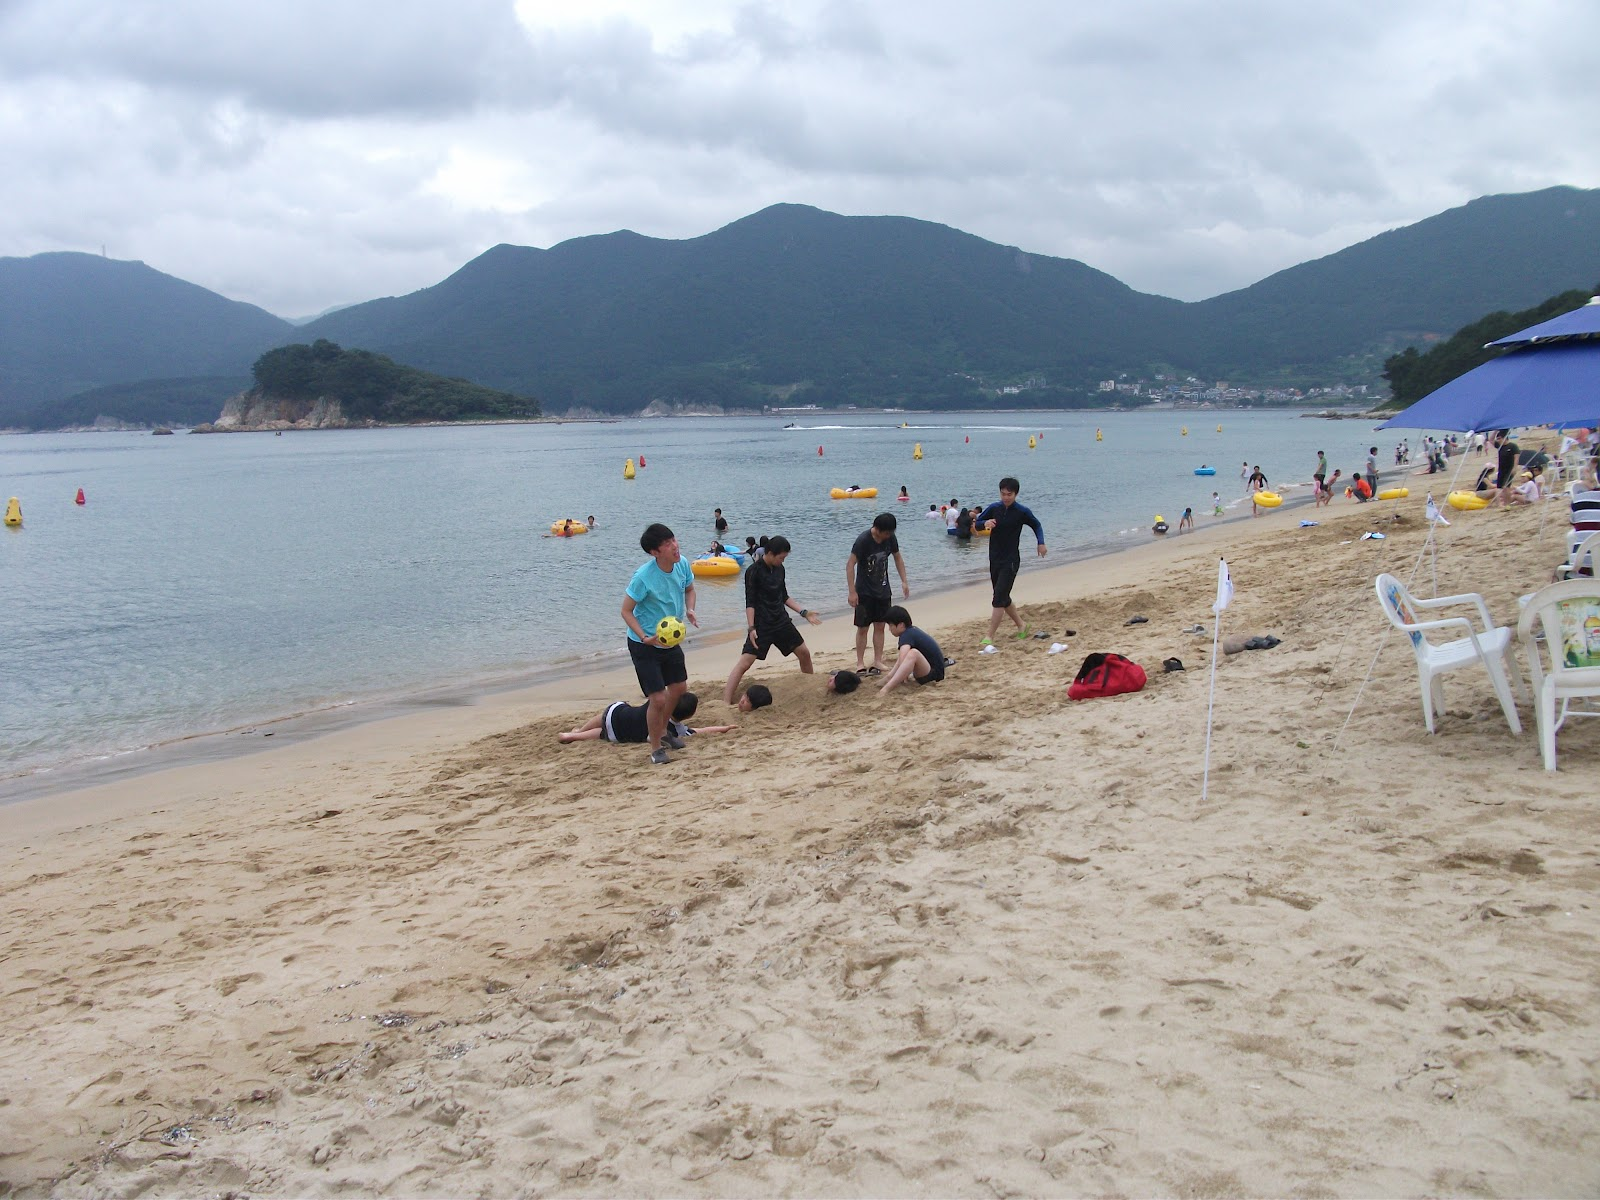 Geoje-si South Korea  city pictures gallery : Gujora Beach, Geoje Si, South Korea | Koreabridge